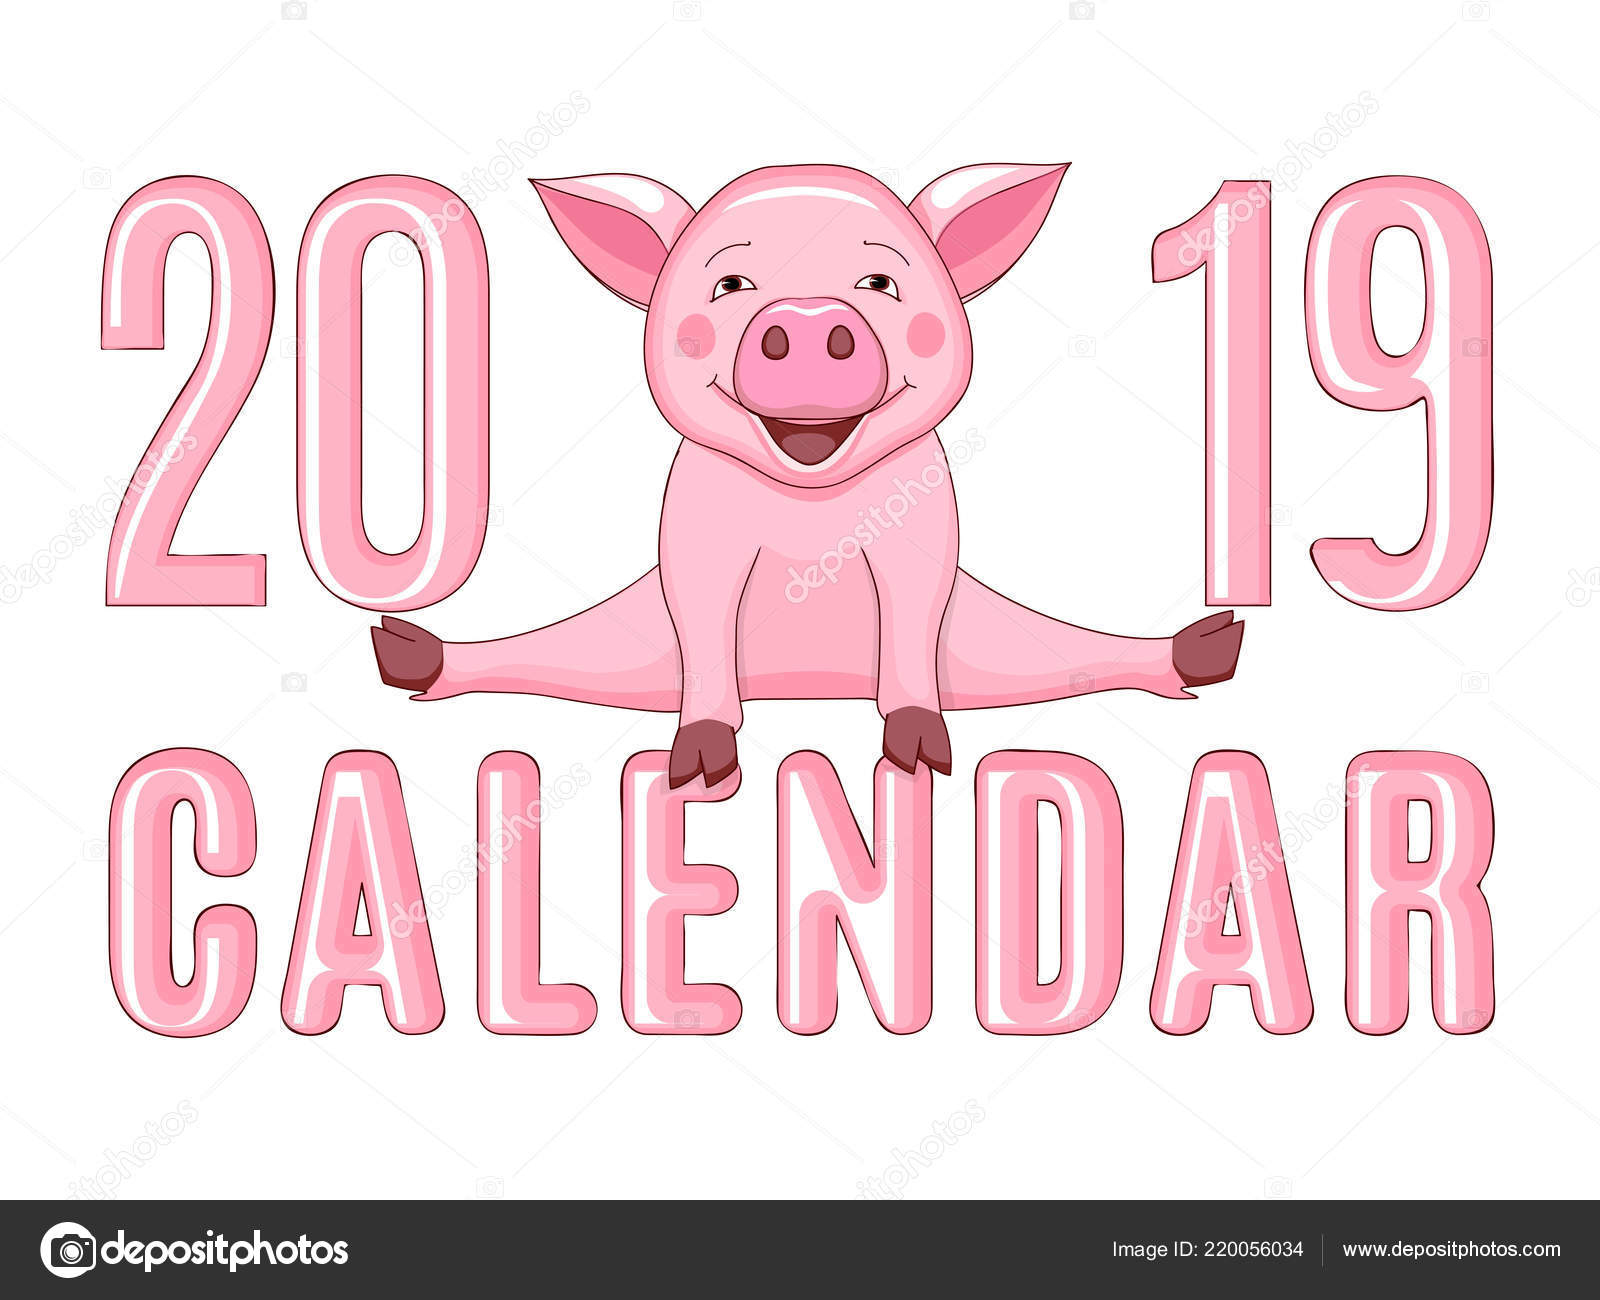 Simbolo Calendario Word.Simbolo Porcellini Rosa Fumetto Anno 2019 Secondo Astrologia